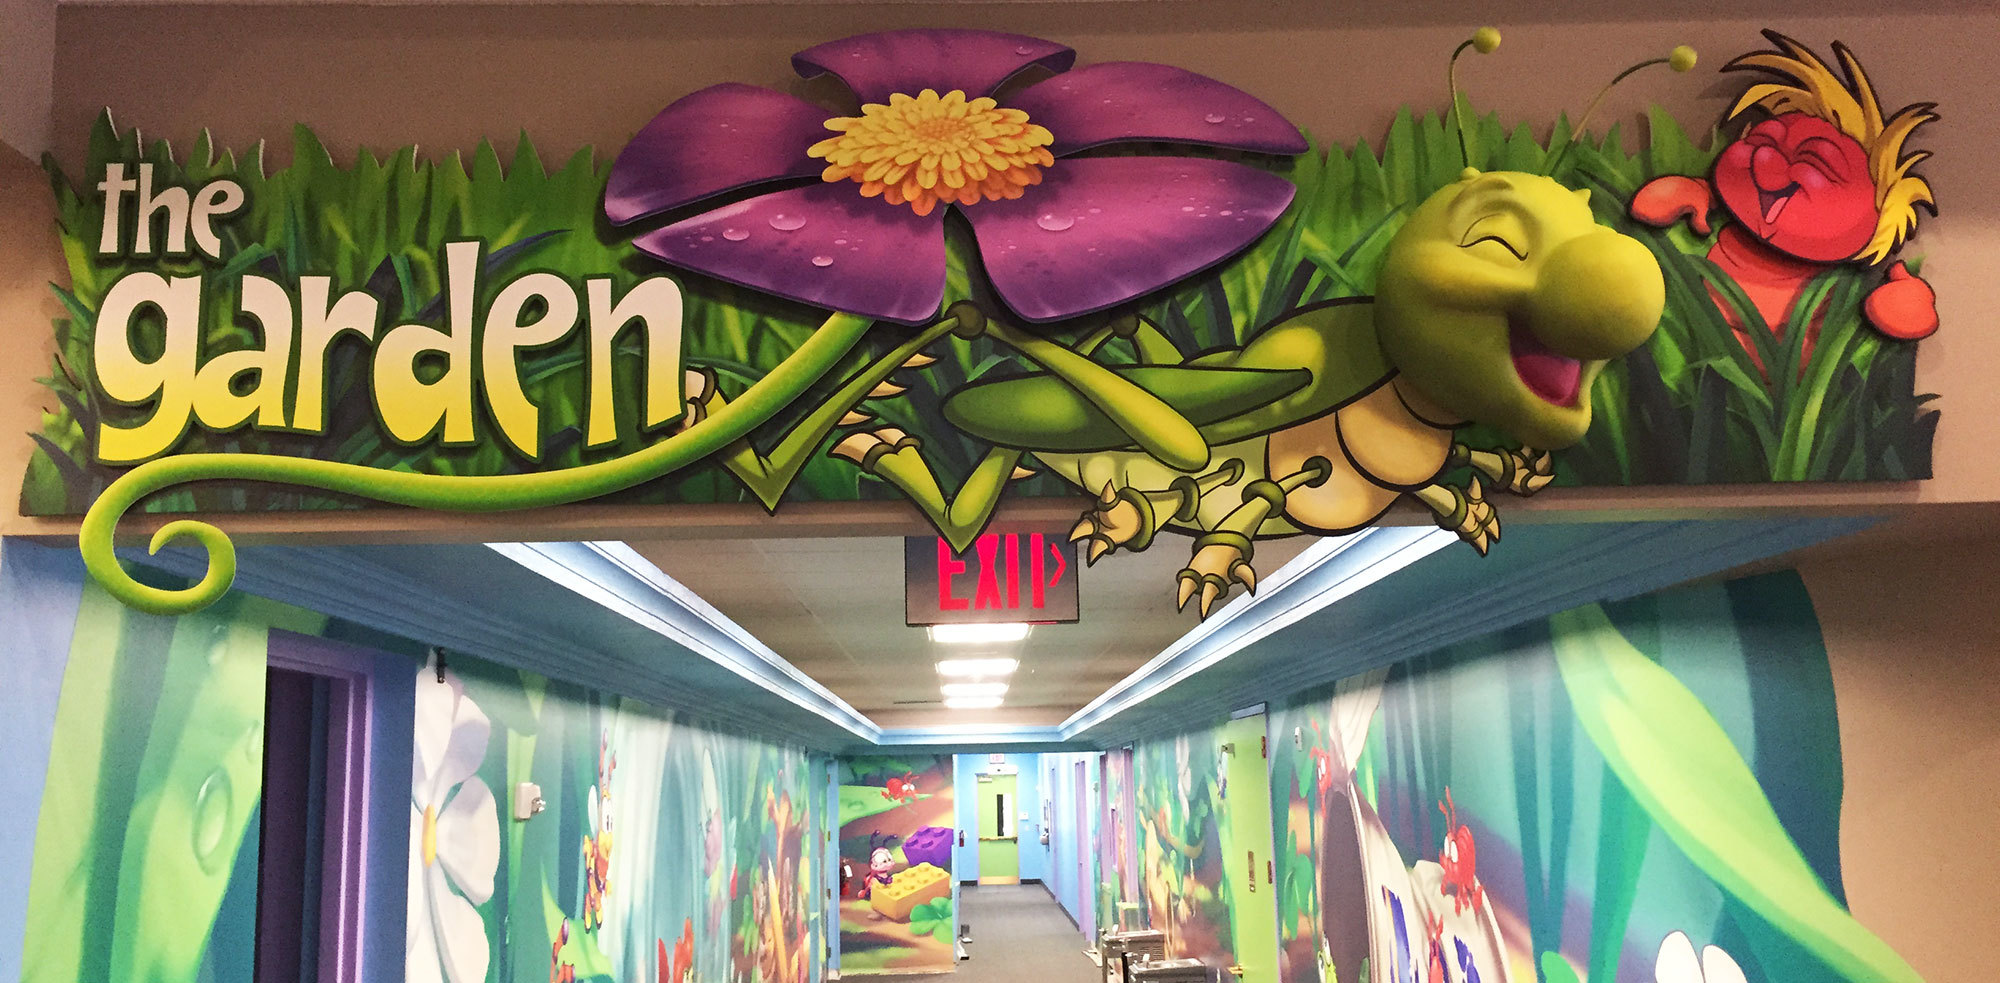 Bugs and Grasshopped Themed Wallcovering and Sign at Meadowbrook Church